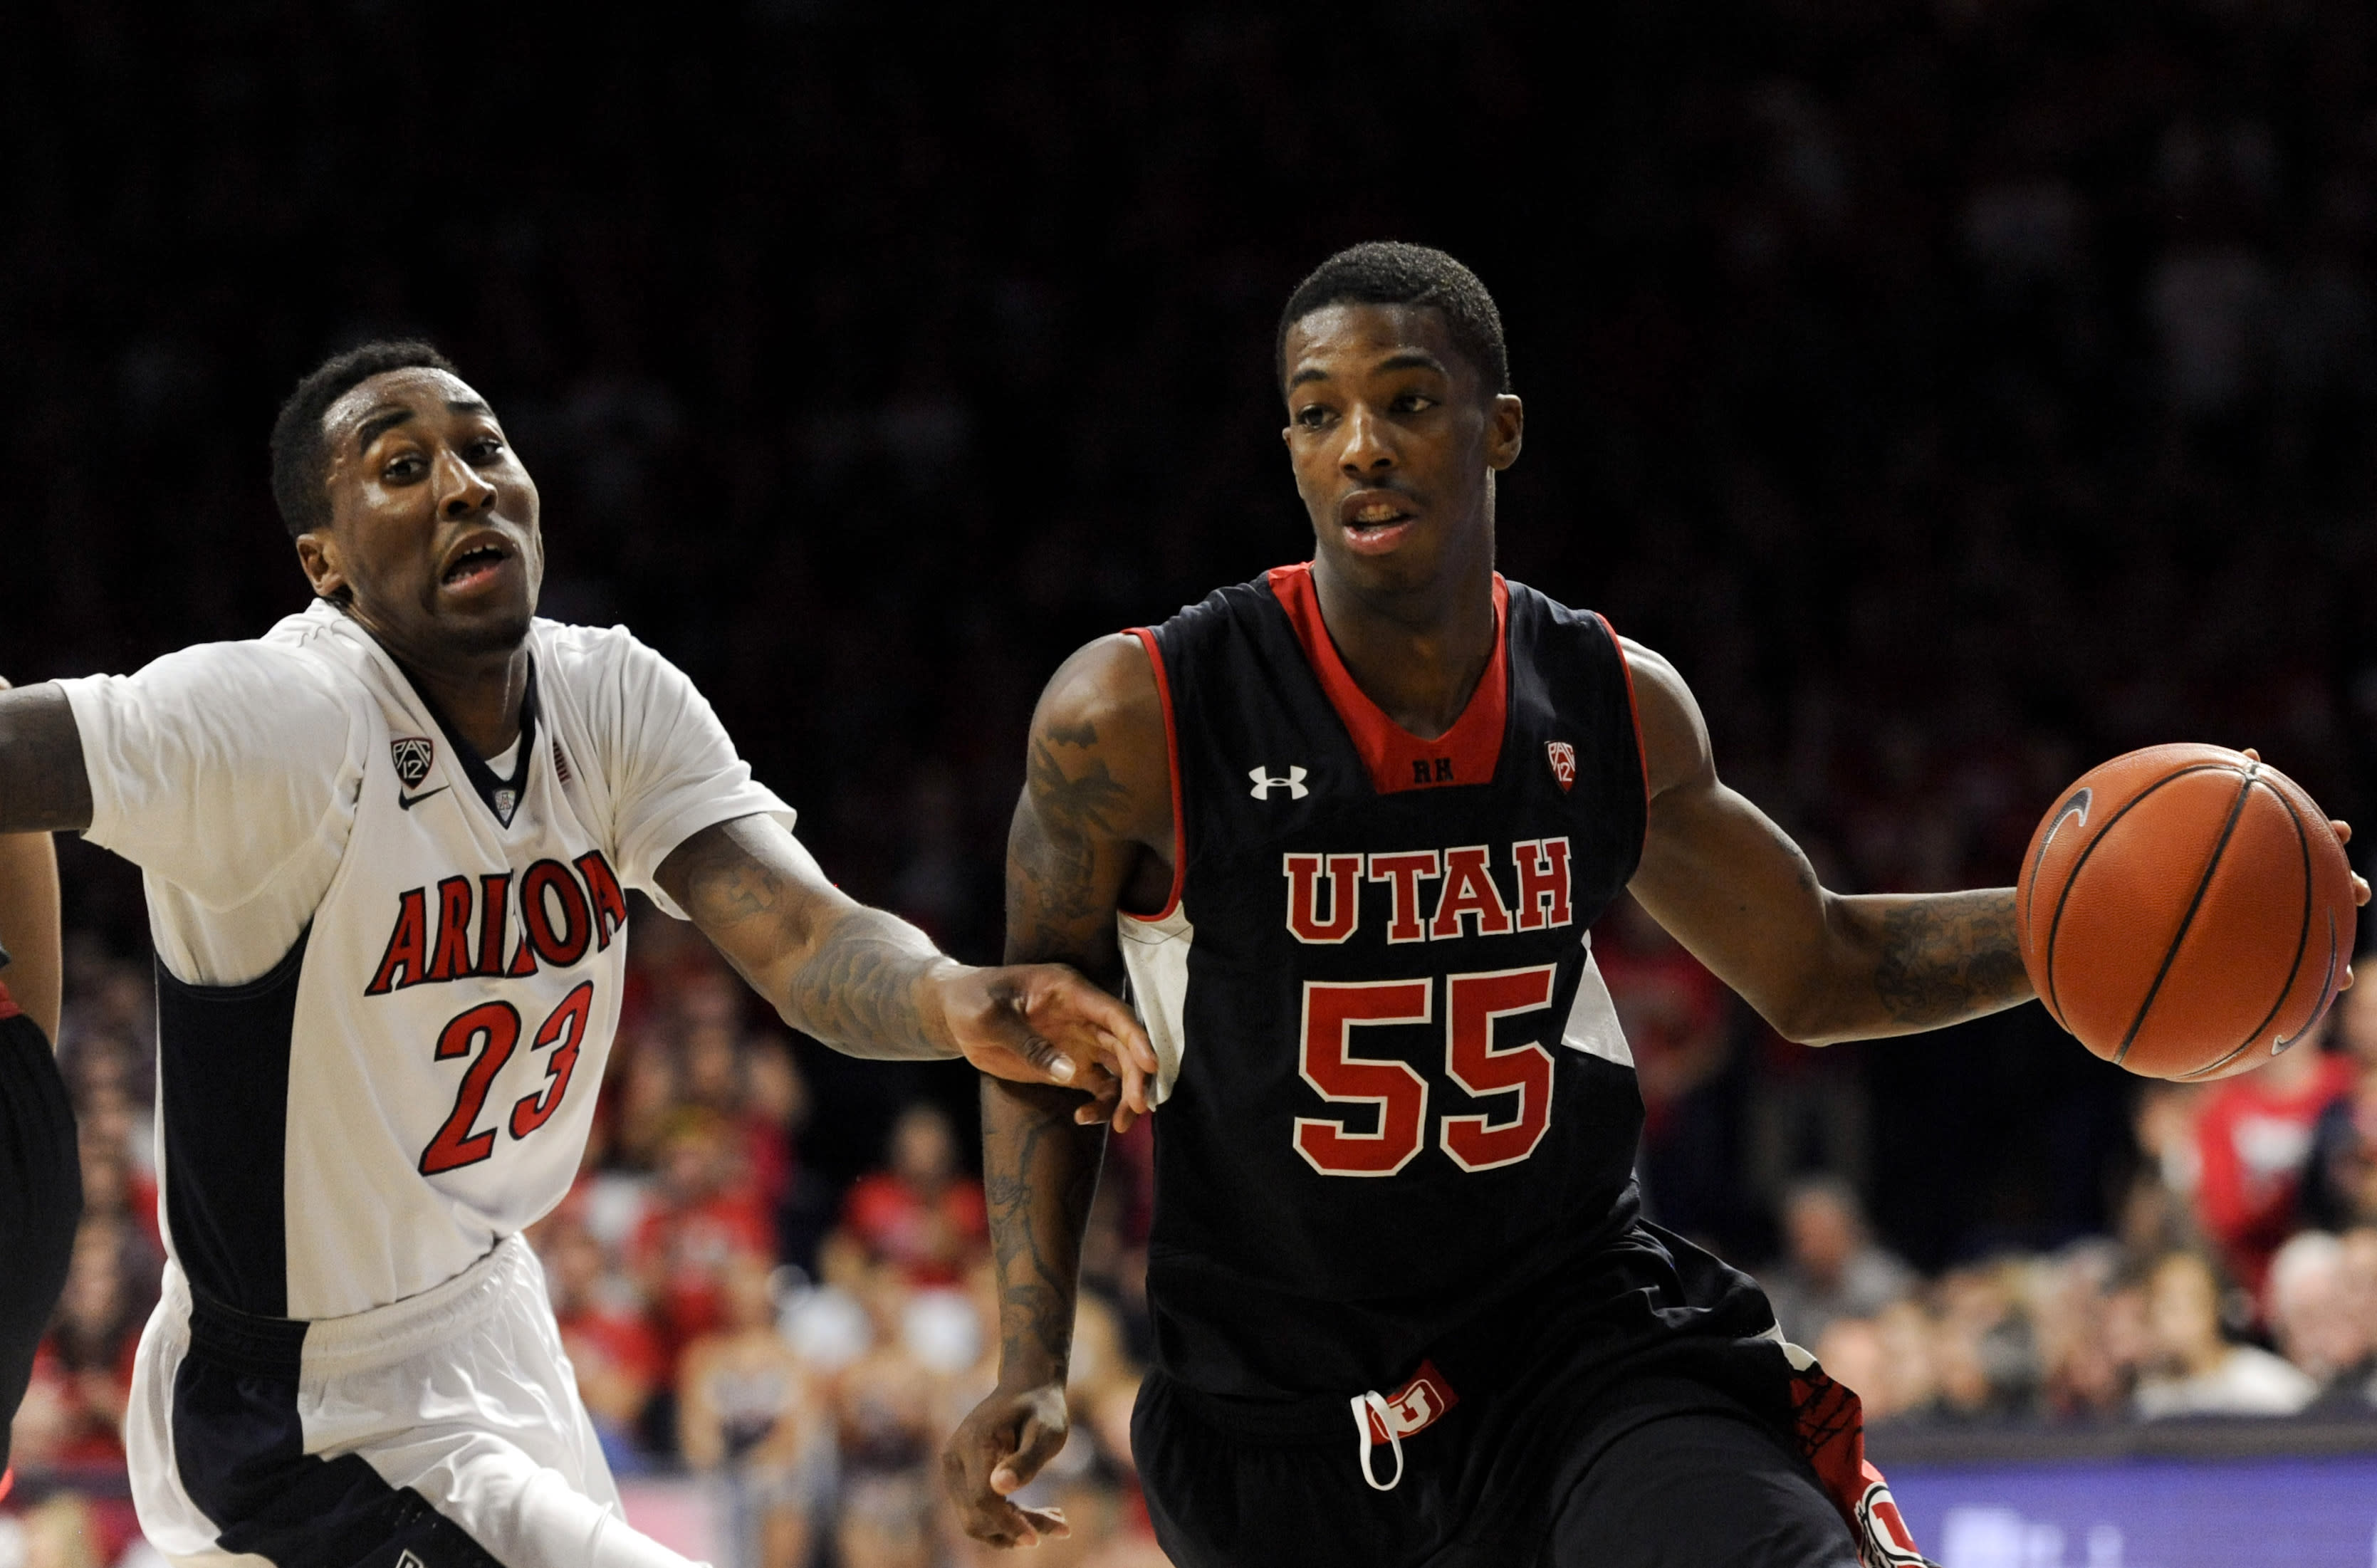 What to watch this weekend: Can Utah avenge its loss at Arizona?